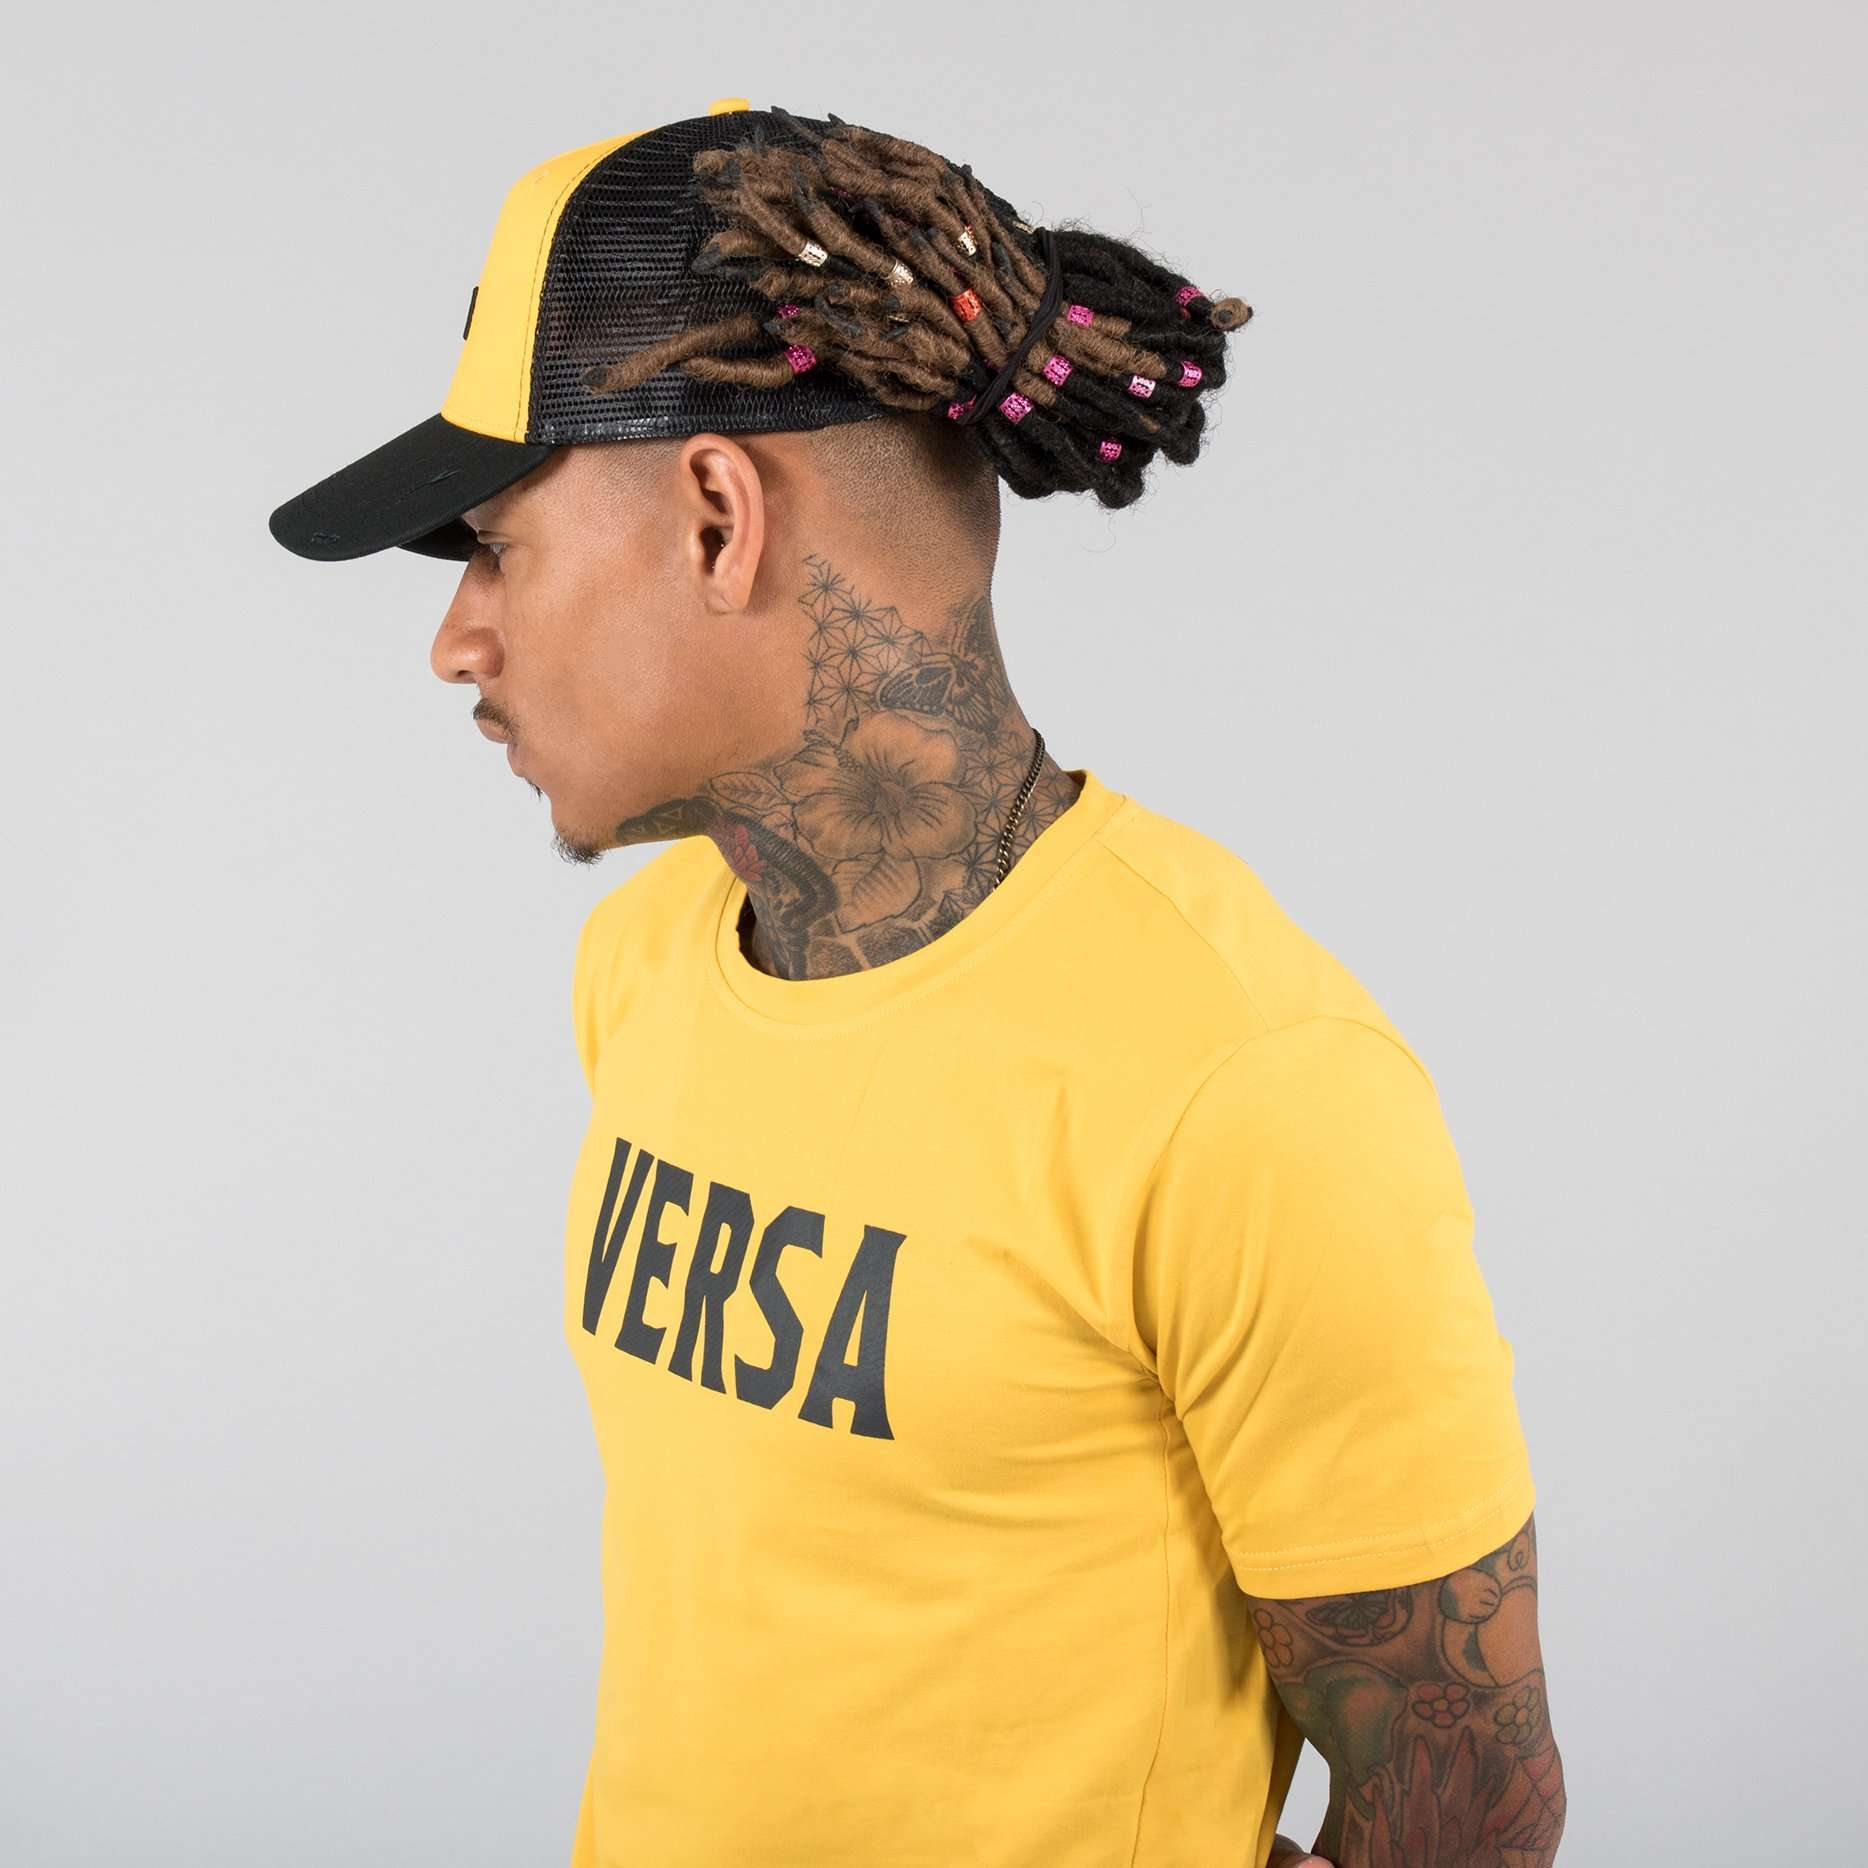 Versa Forma | Motif Trucker Cap - Black/Yellow